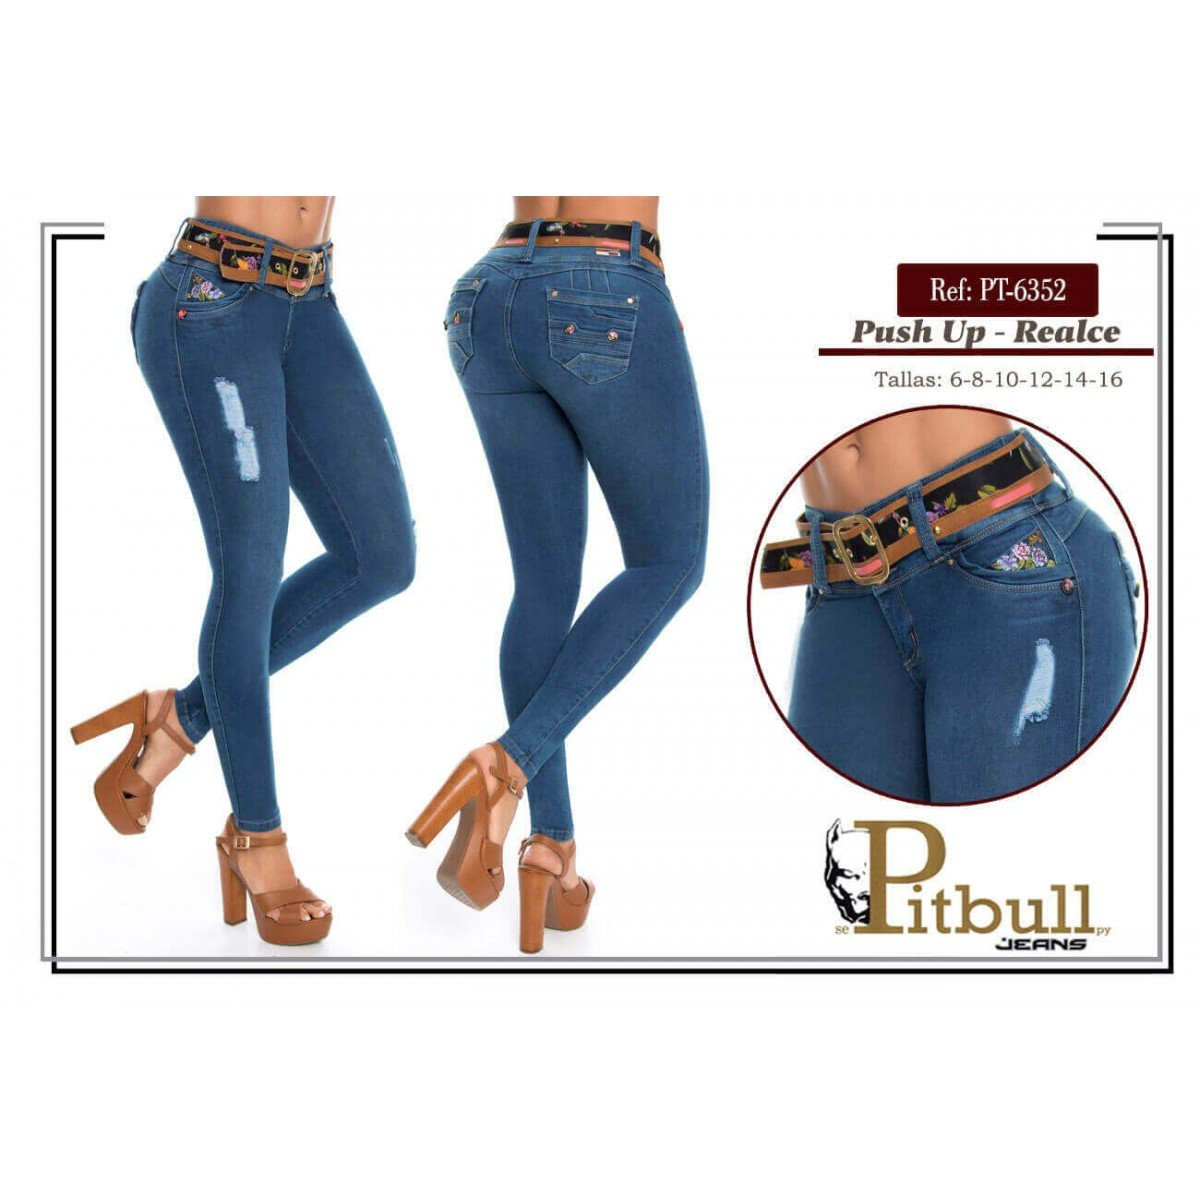 pantalon-colombiano-pitbull-pt6352